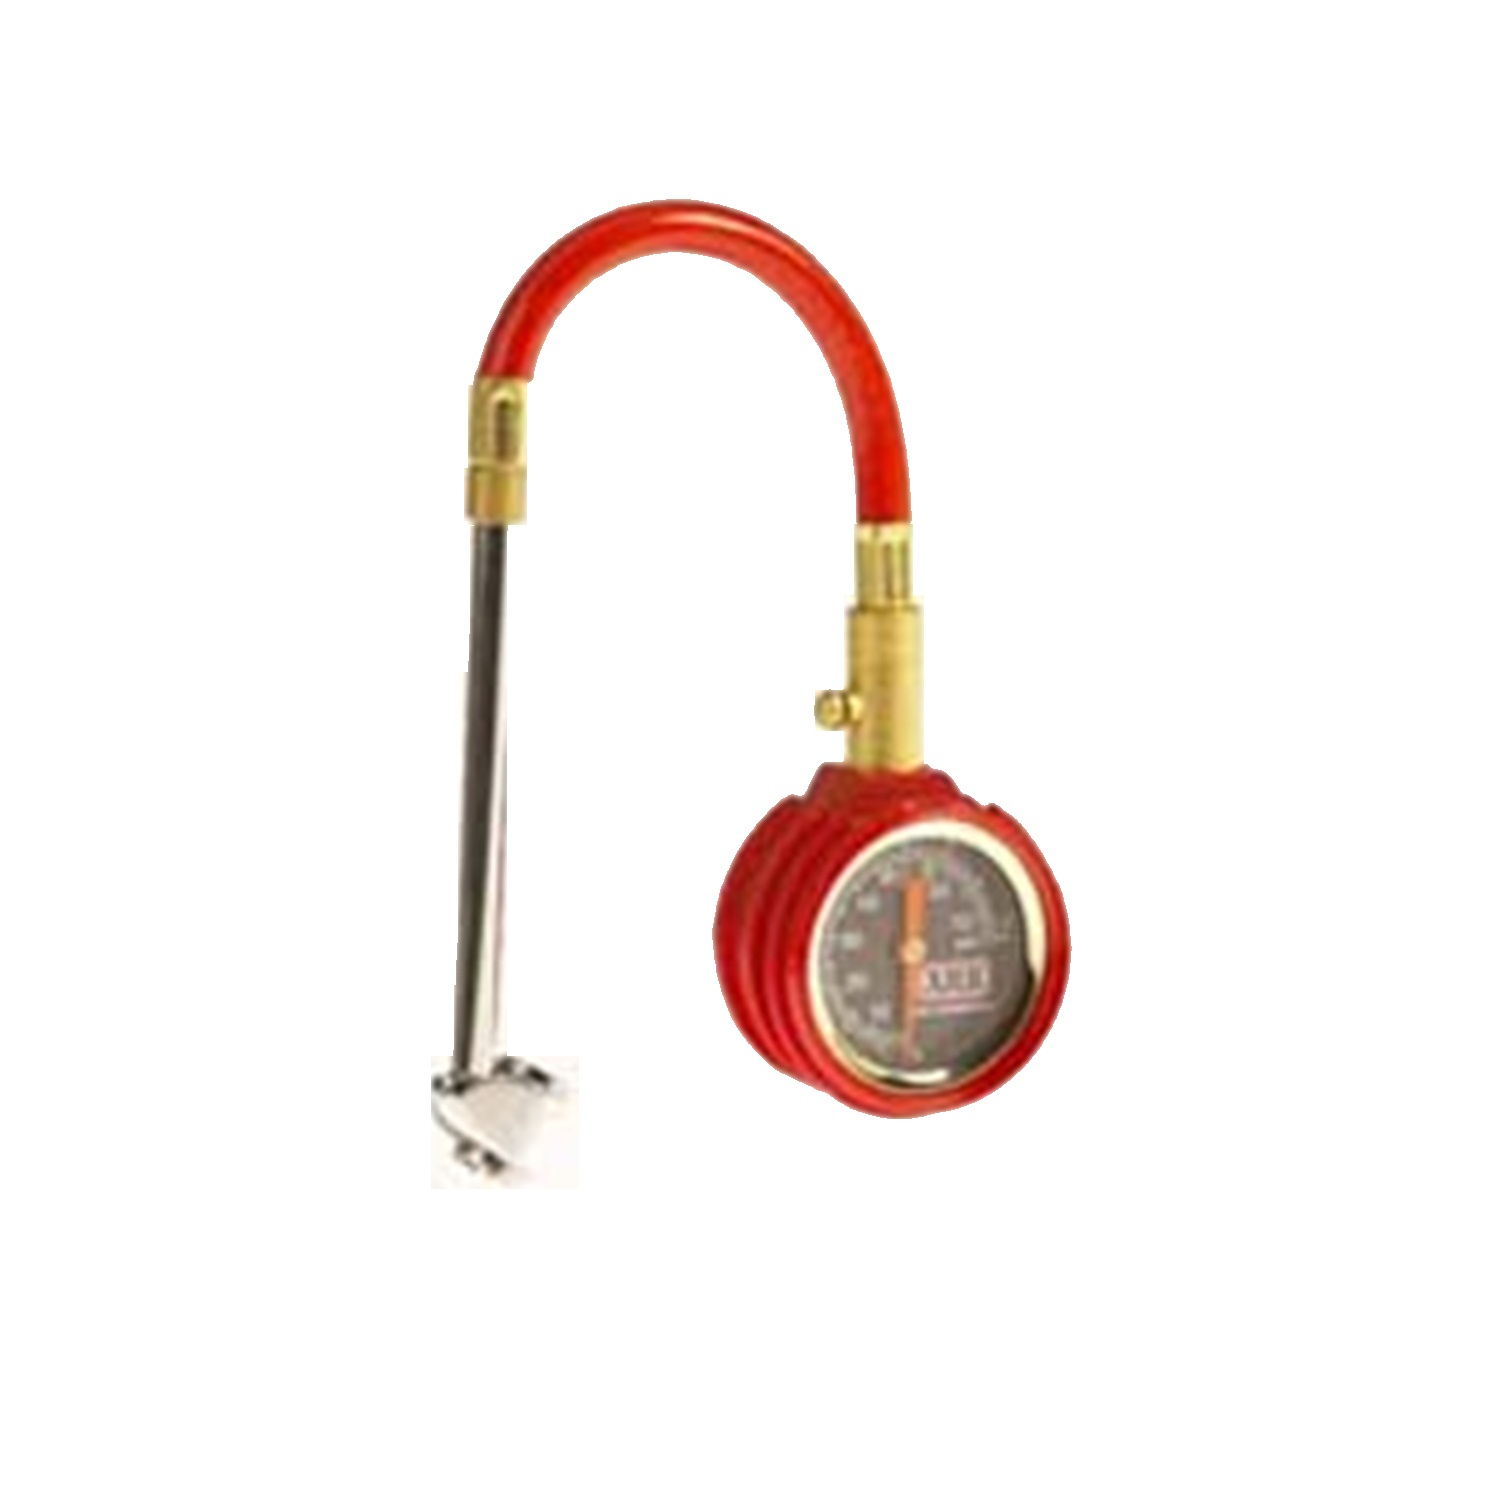 ARB 4x4 Accessories ARB506 Dial Tire Gauge